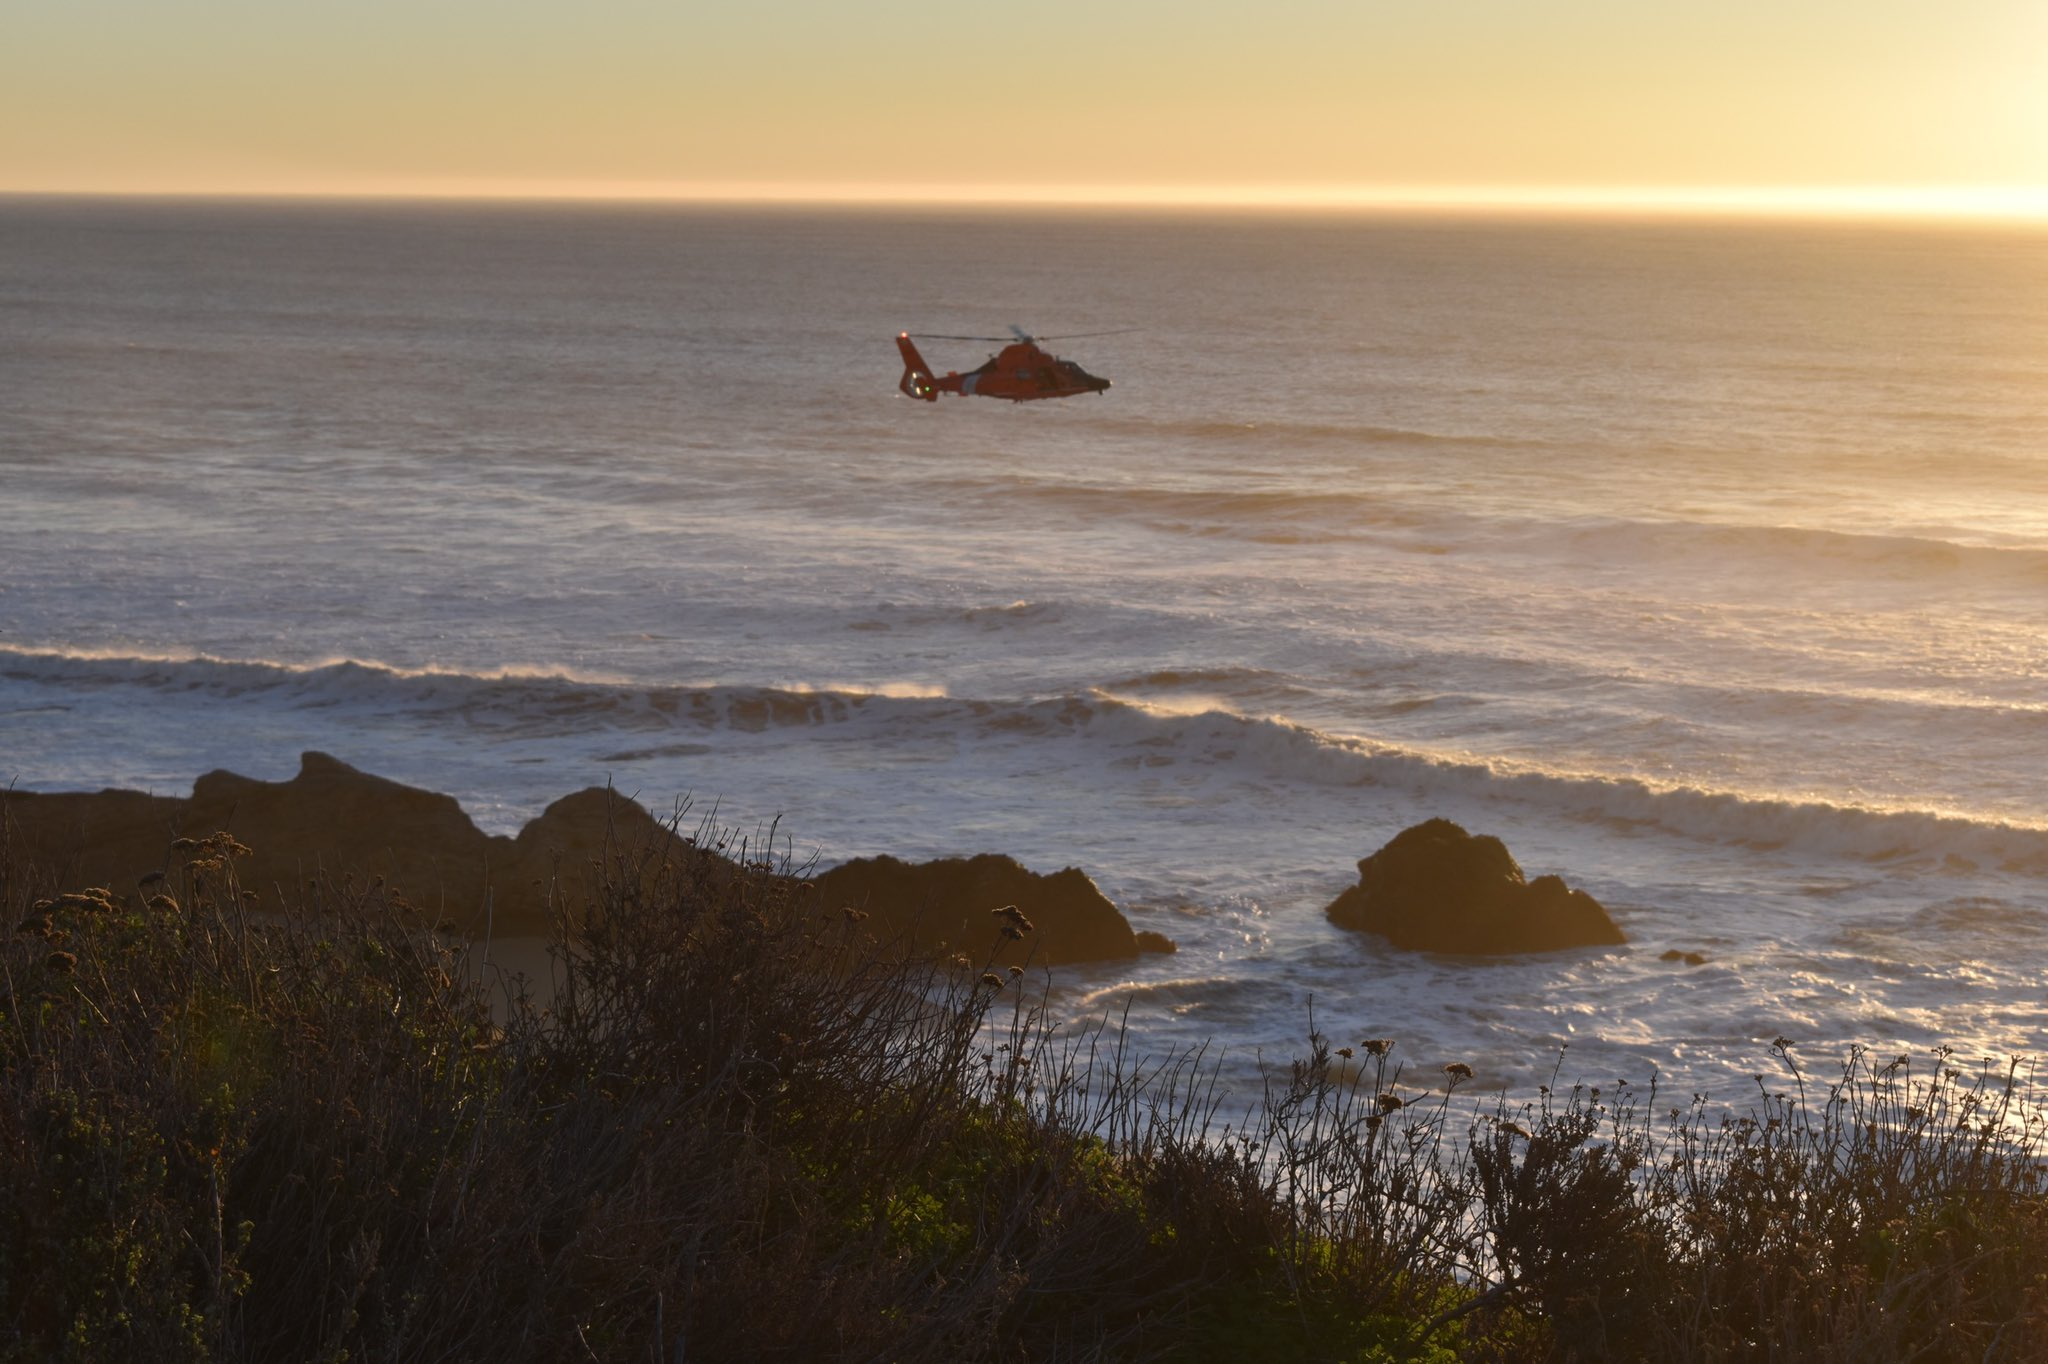 12-year-old boy missing after wave sweeps him into water at Half Moon Bay beach